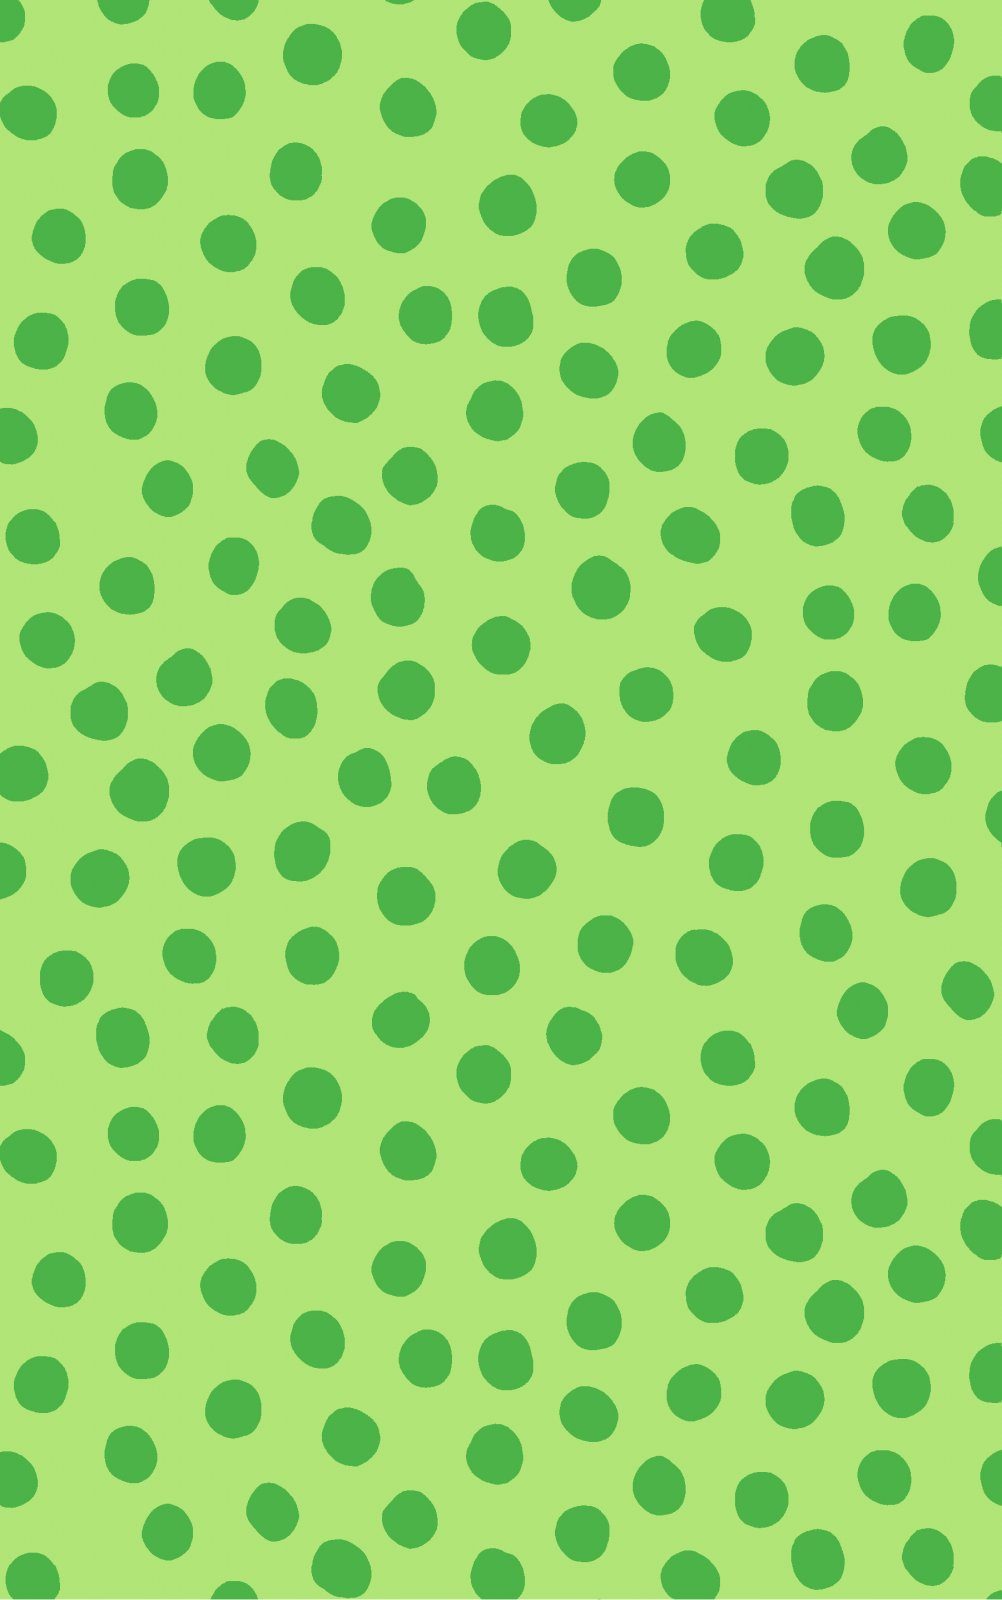 Remnant - 1 3/4 yd - Maywood - Green on Green Polka Dots